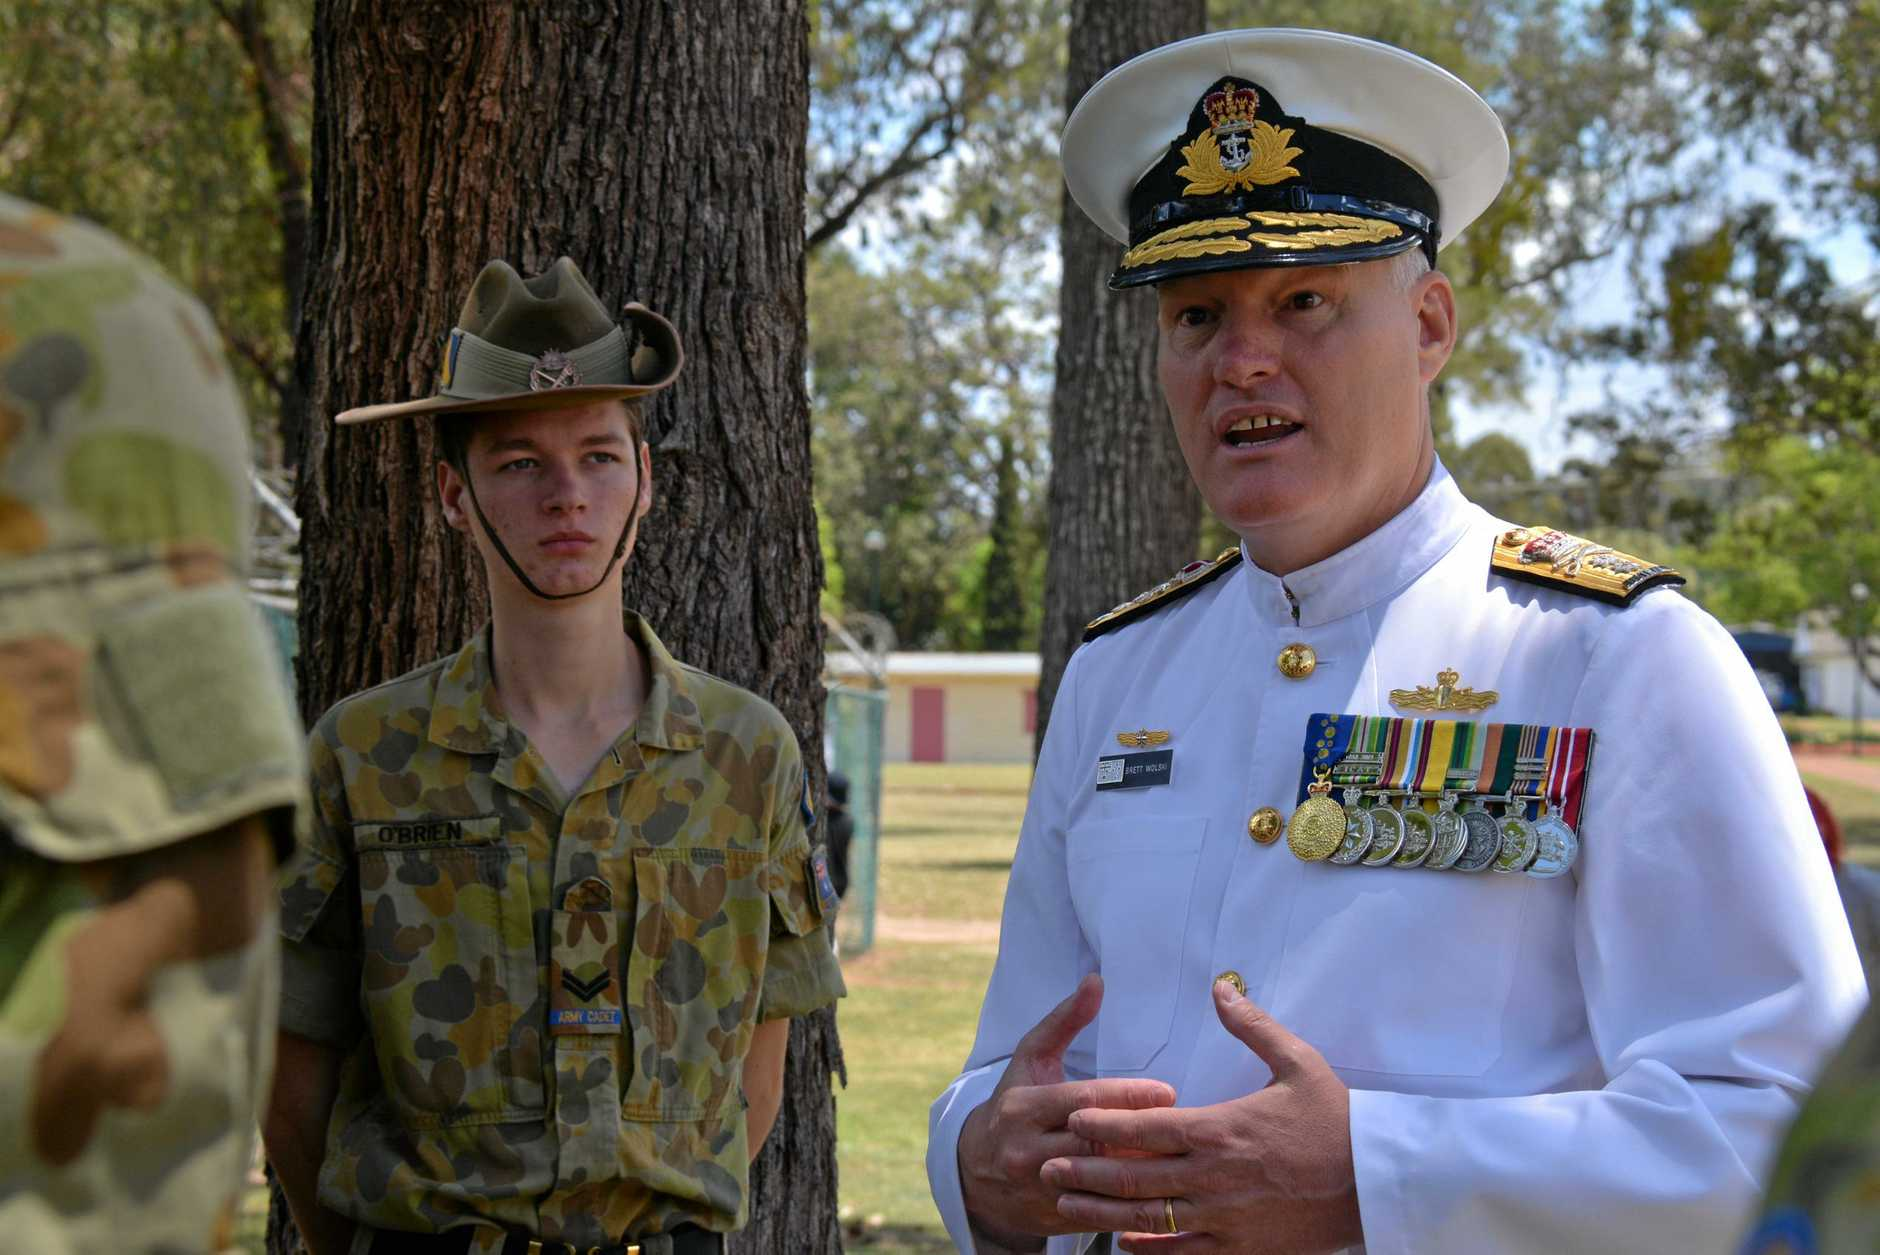 WORDS OF WISDOM: Rear Admiral Brett Wolski AM from the Royal Australian Navy passes on advice to the Wondai 135 Australian Army Cadets after the 2018 Kingaroy Remembrance Day service.